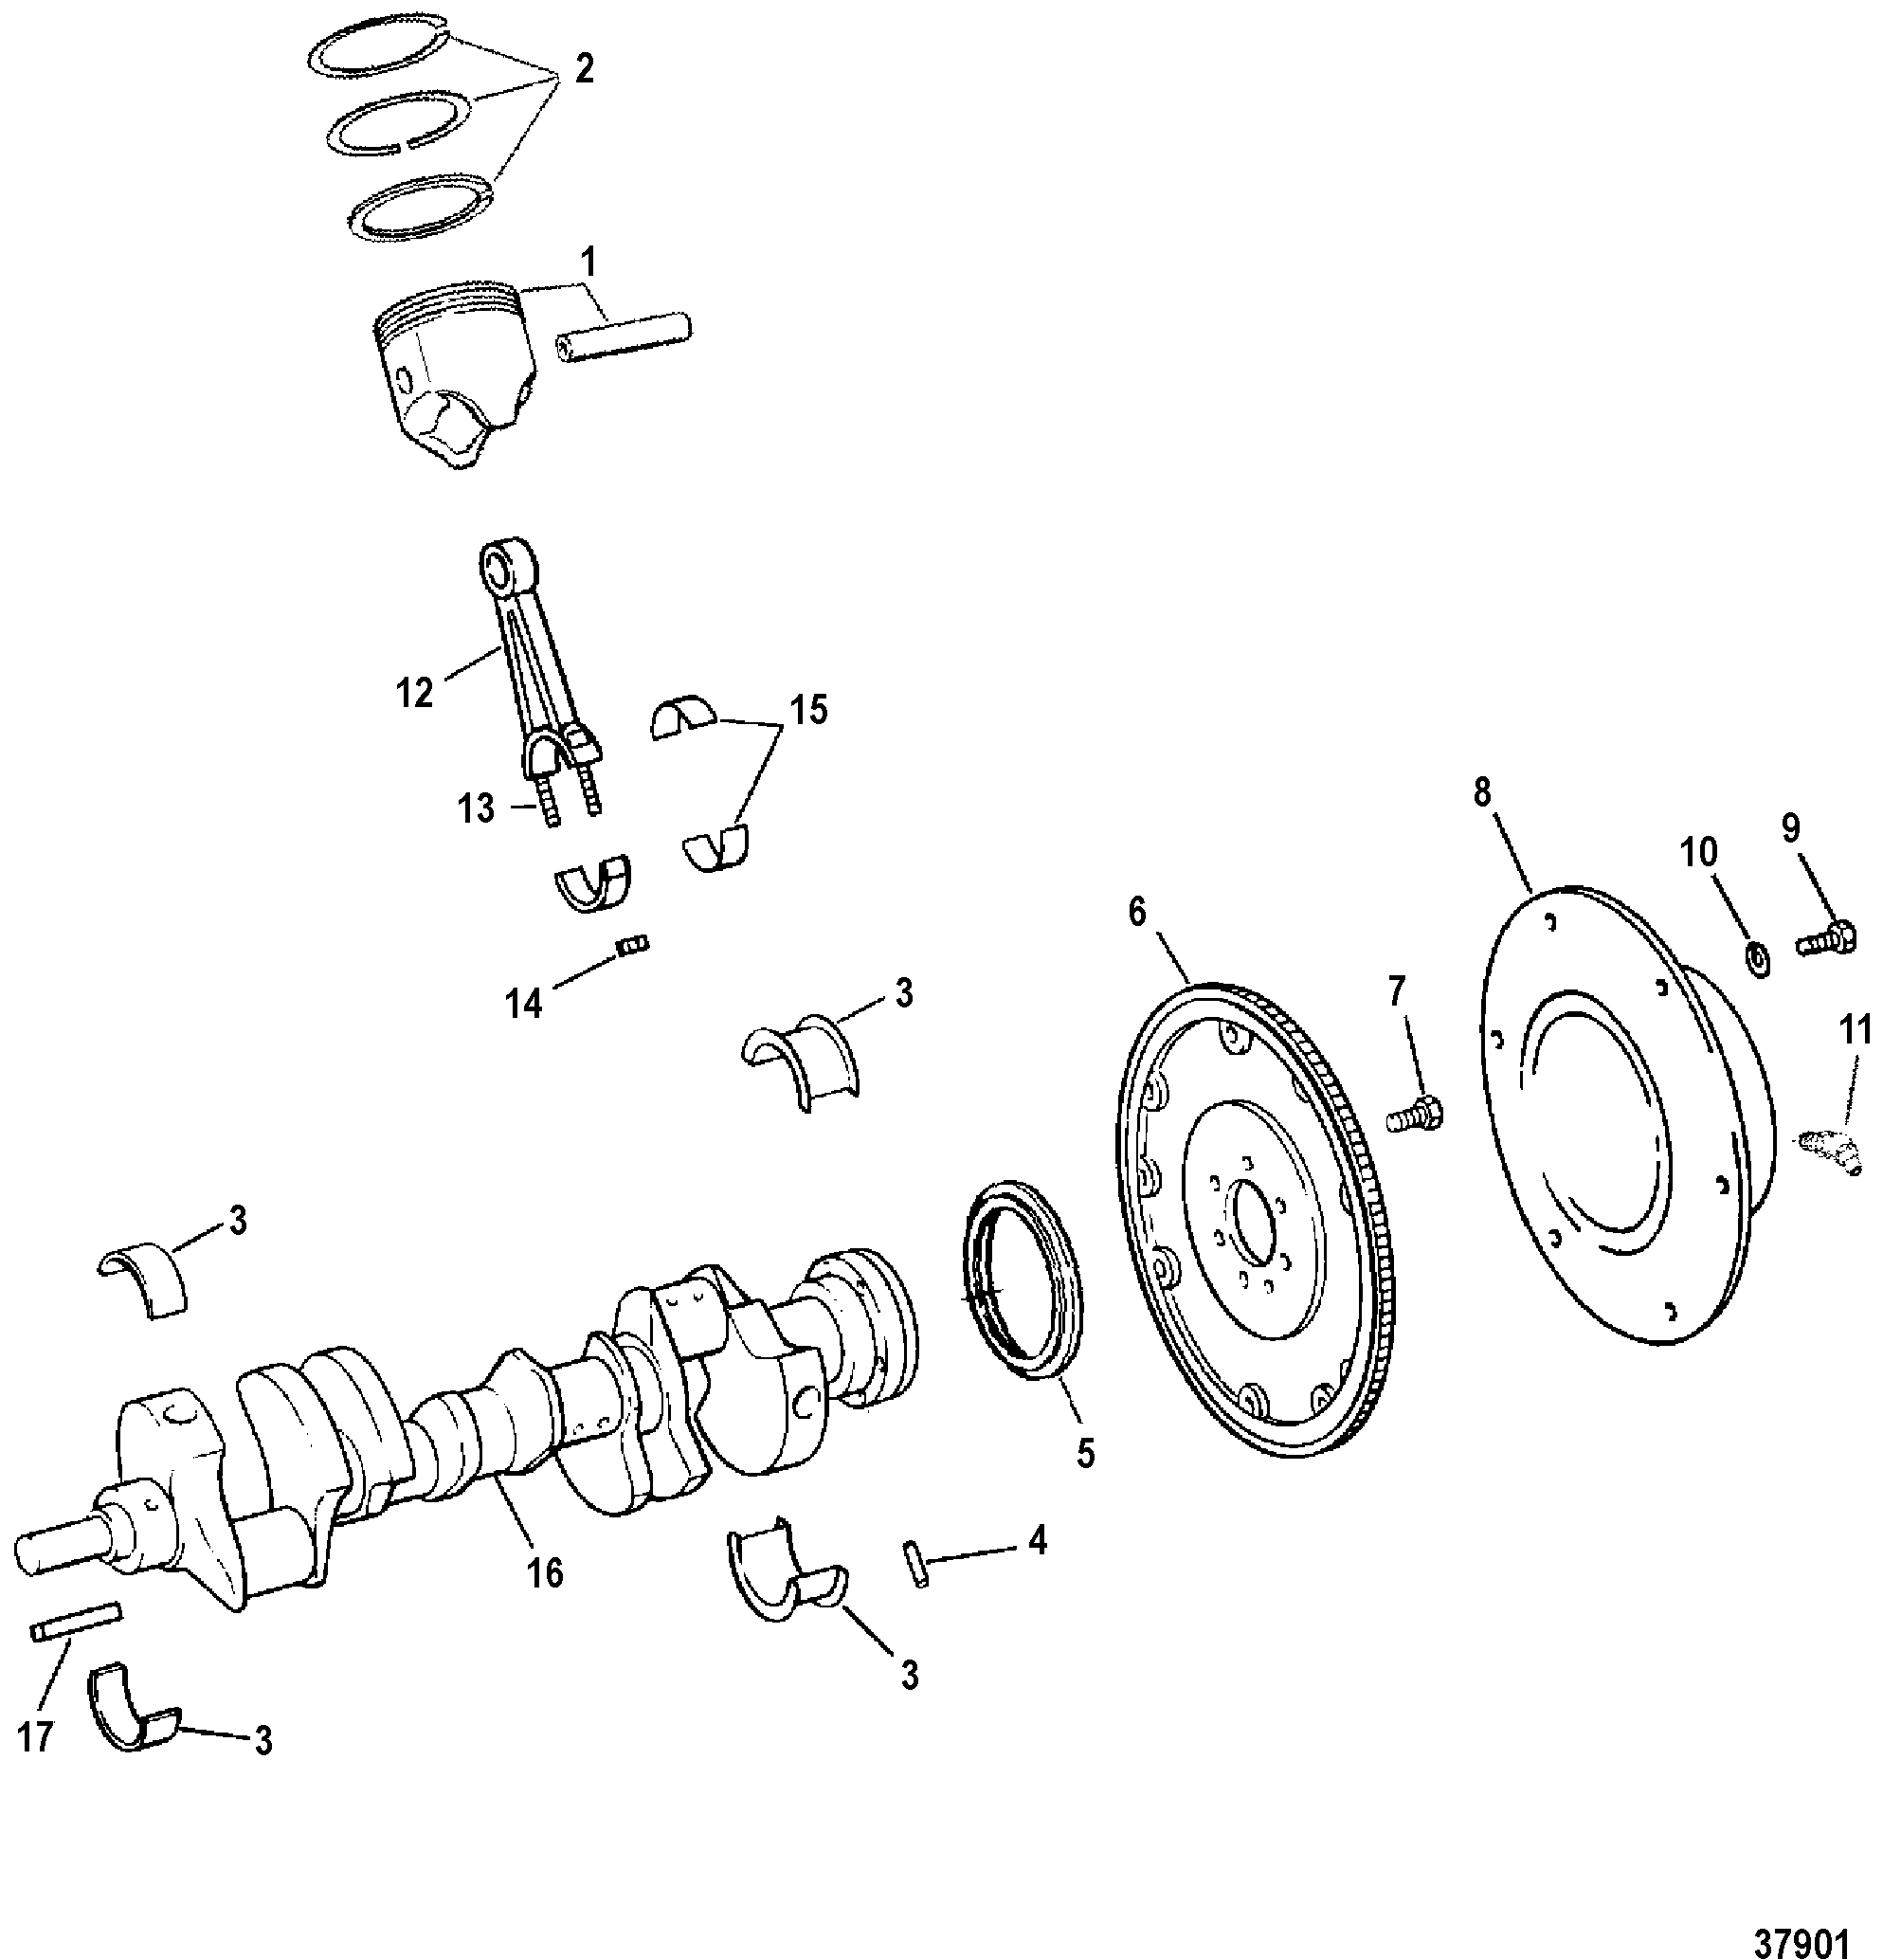 cp performance crankshaft, pistons and connecting rods Marine Engine Wiring Diagram 502 mag mpi (gen 6) gm v 8 1996 serial 0f802600 thru 0k999999 crankshaft, pistons and connecting rods